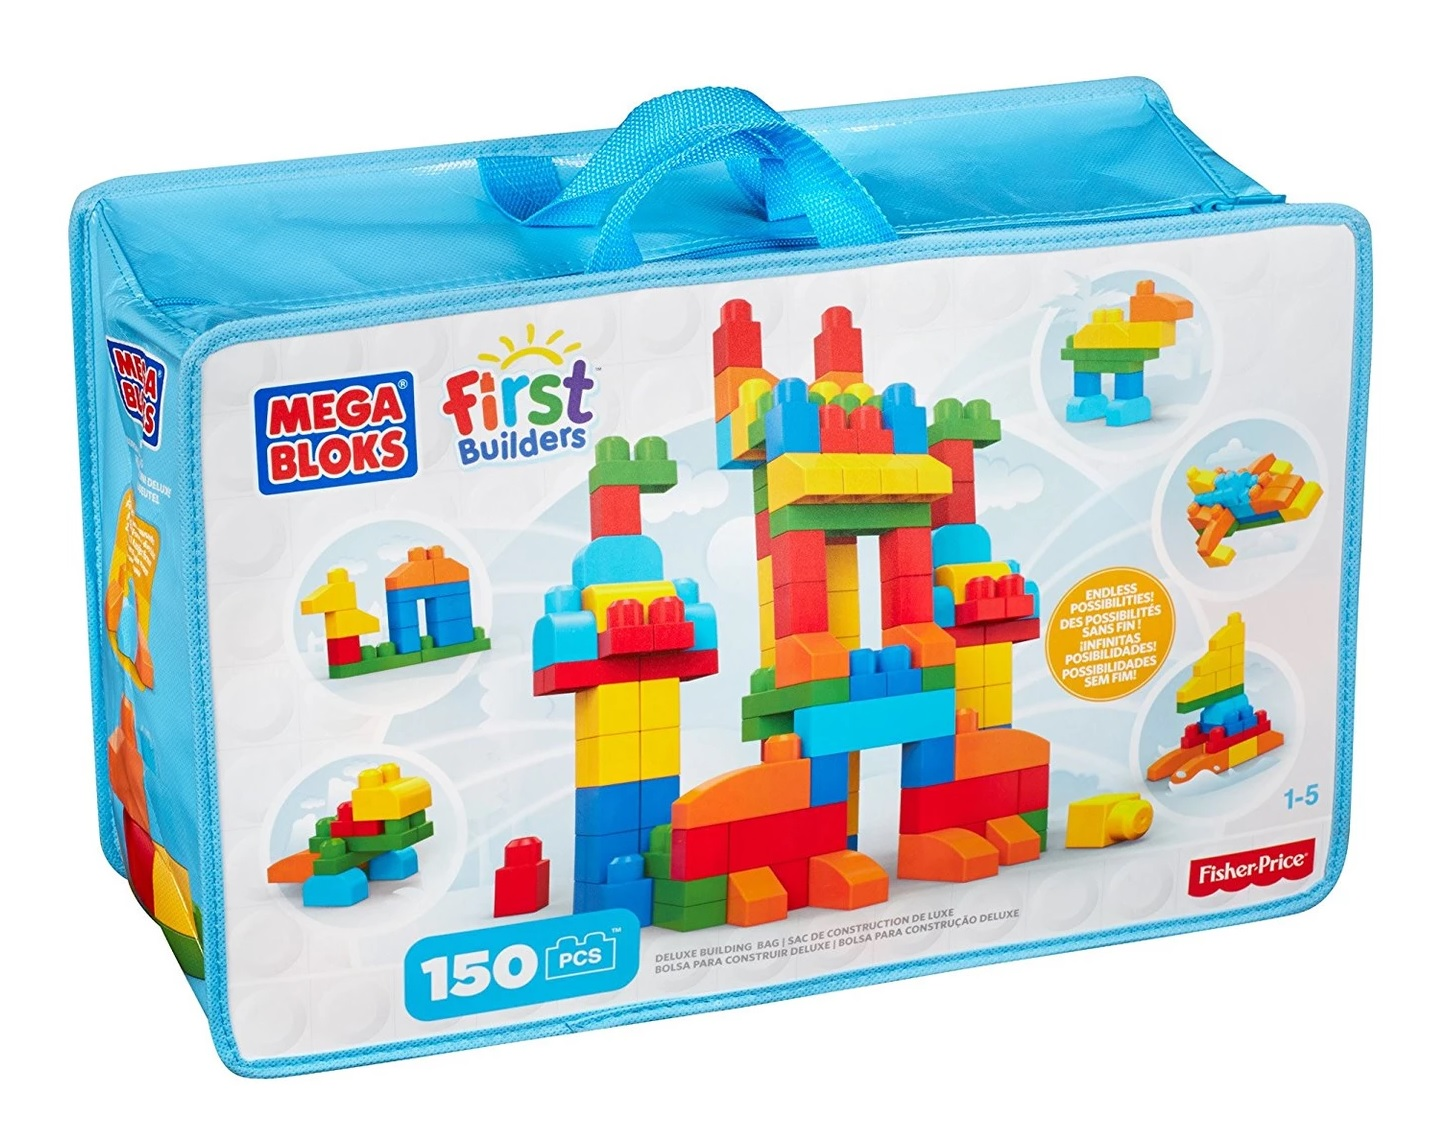 Mega Bloks® First Builders™ Klocki Deluxe 150 el. Mattel CNM43 Fisher Price®